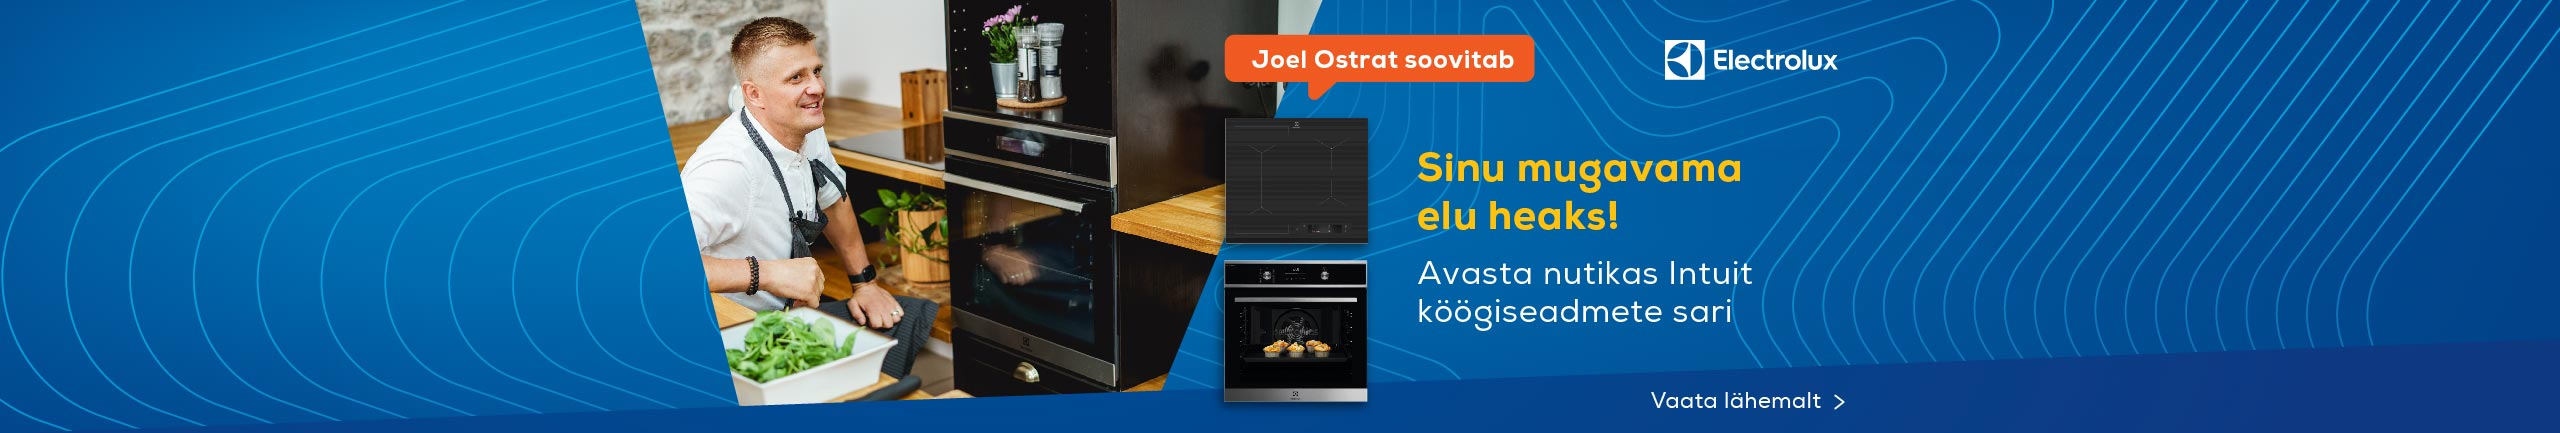 Electrolux Intuit - Discover smart built-in home appliances